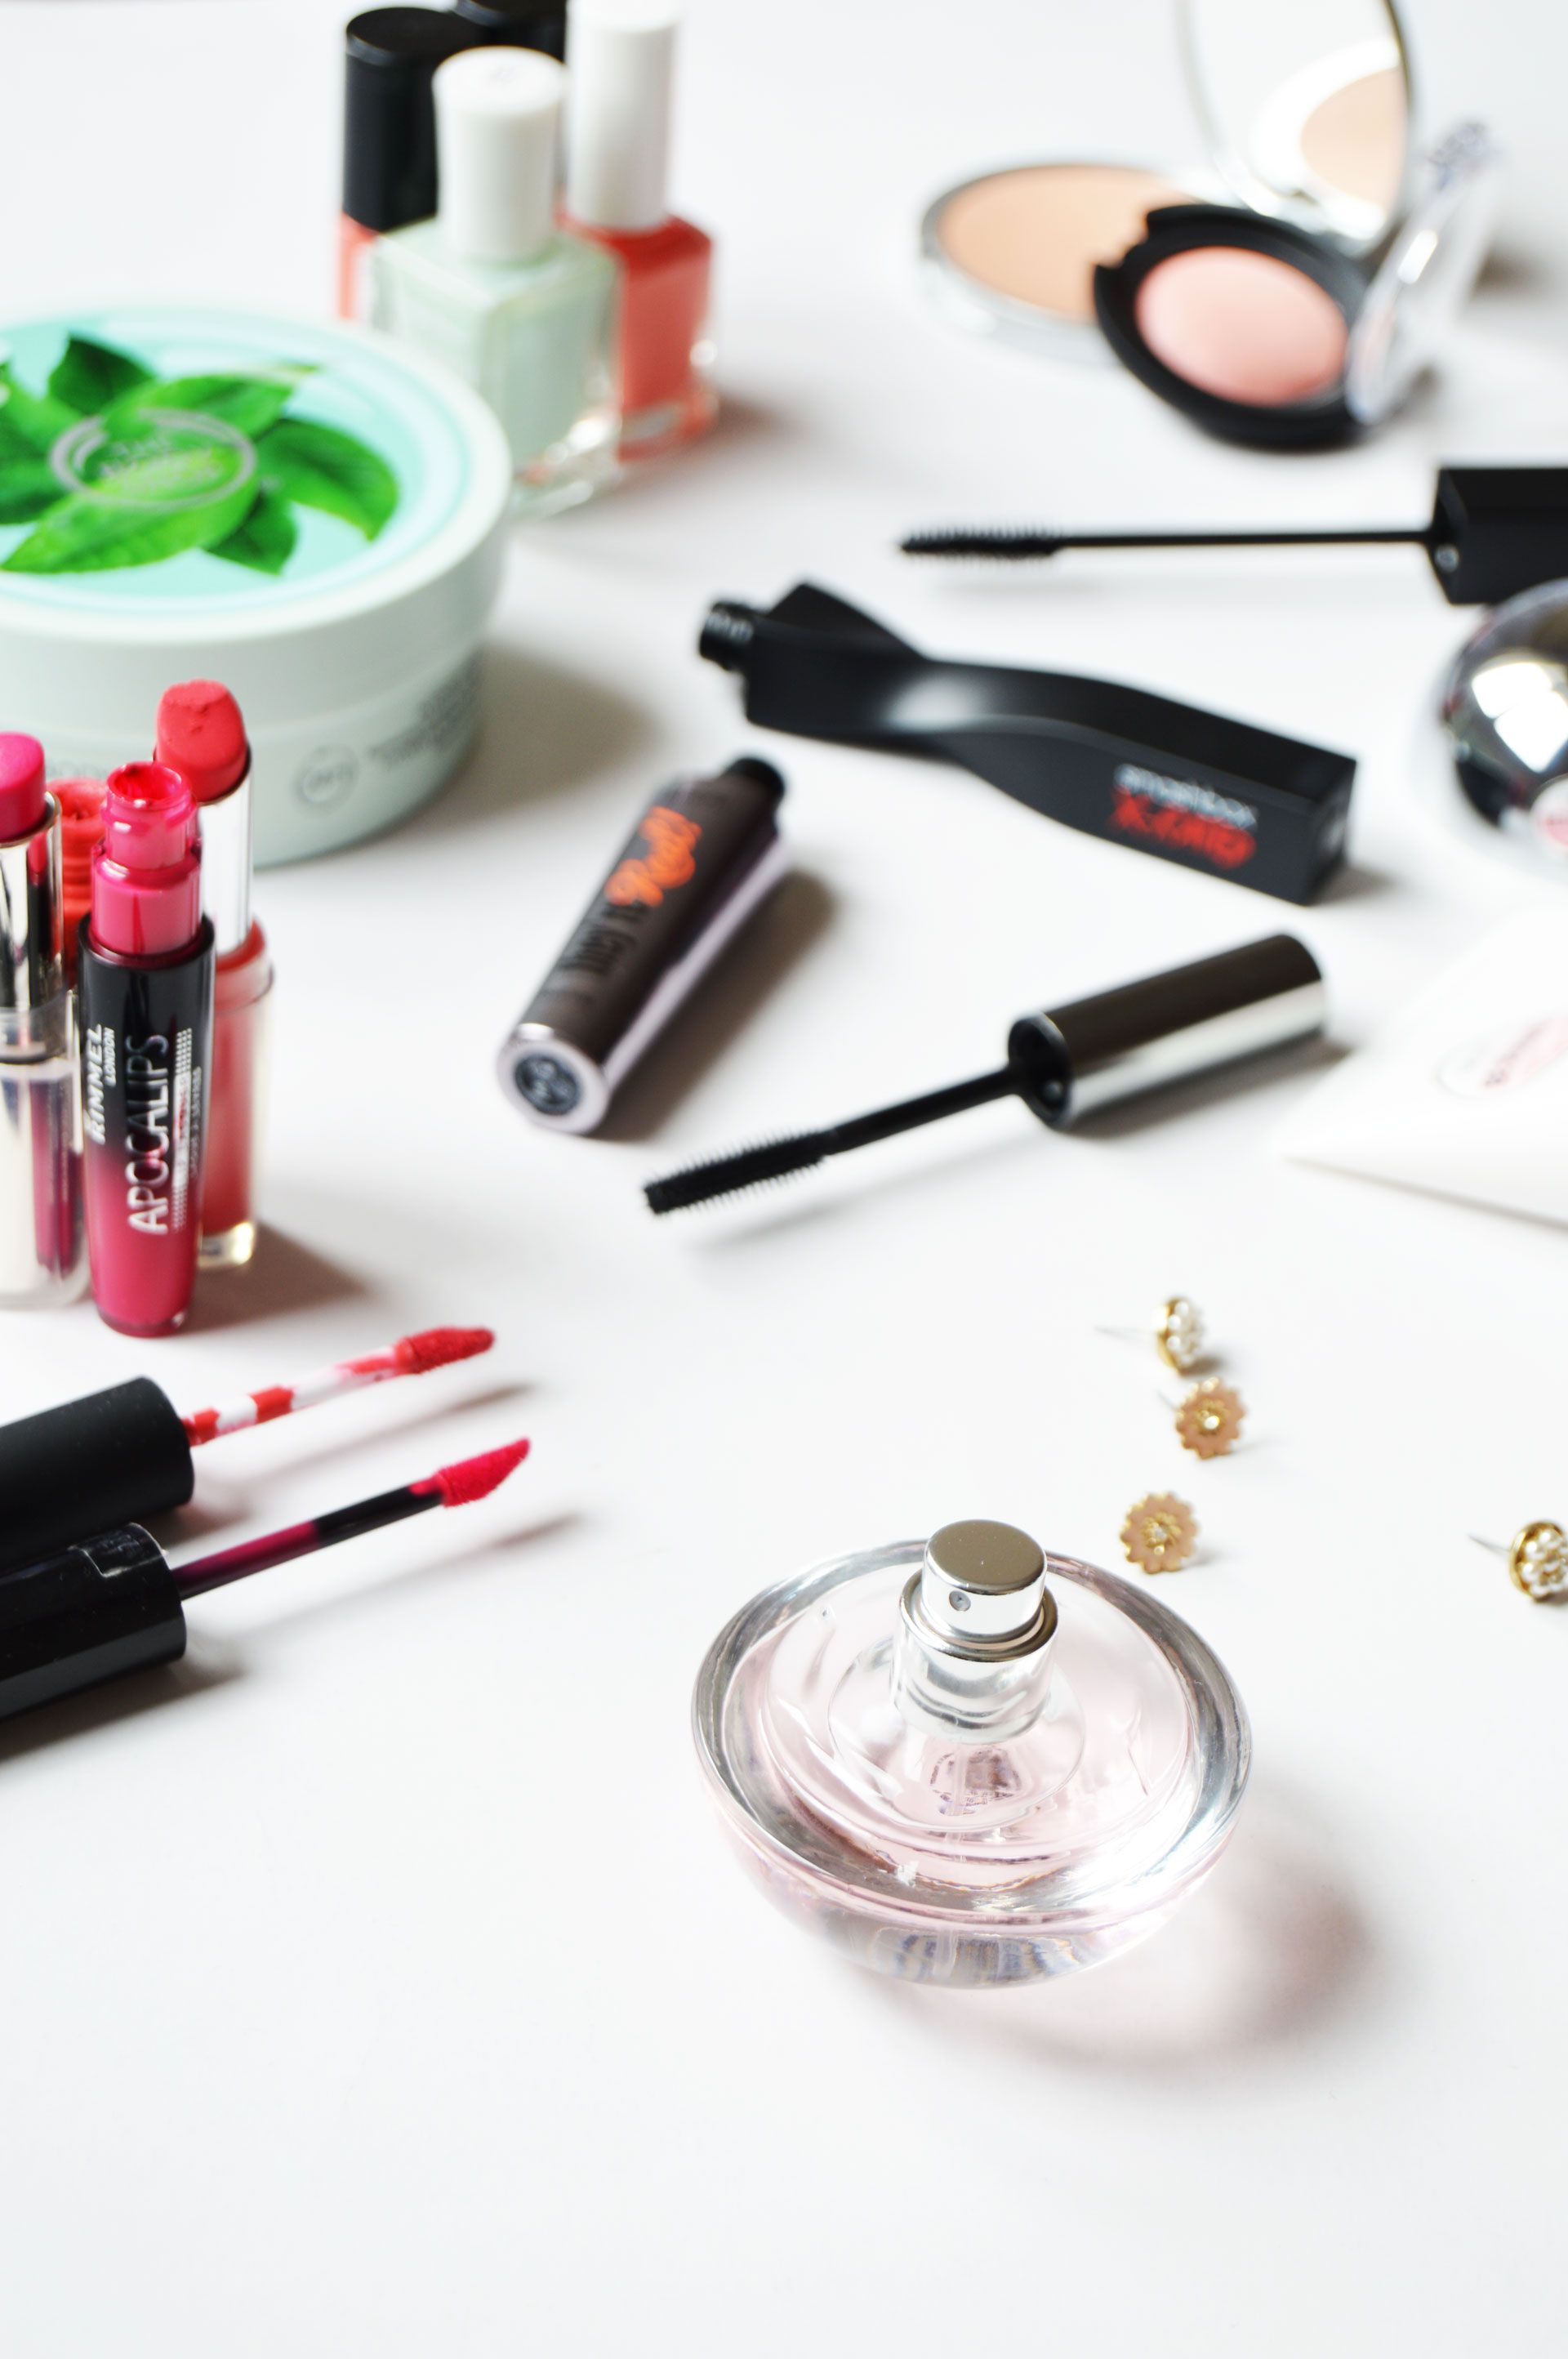 Spring Revamp – Beauty Bits Everyone Needs | Refreshing the skincare and makeup routine each season is good, revamping the routine according to what skin needs will make the skin healthier. Click through to check out all the tips.